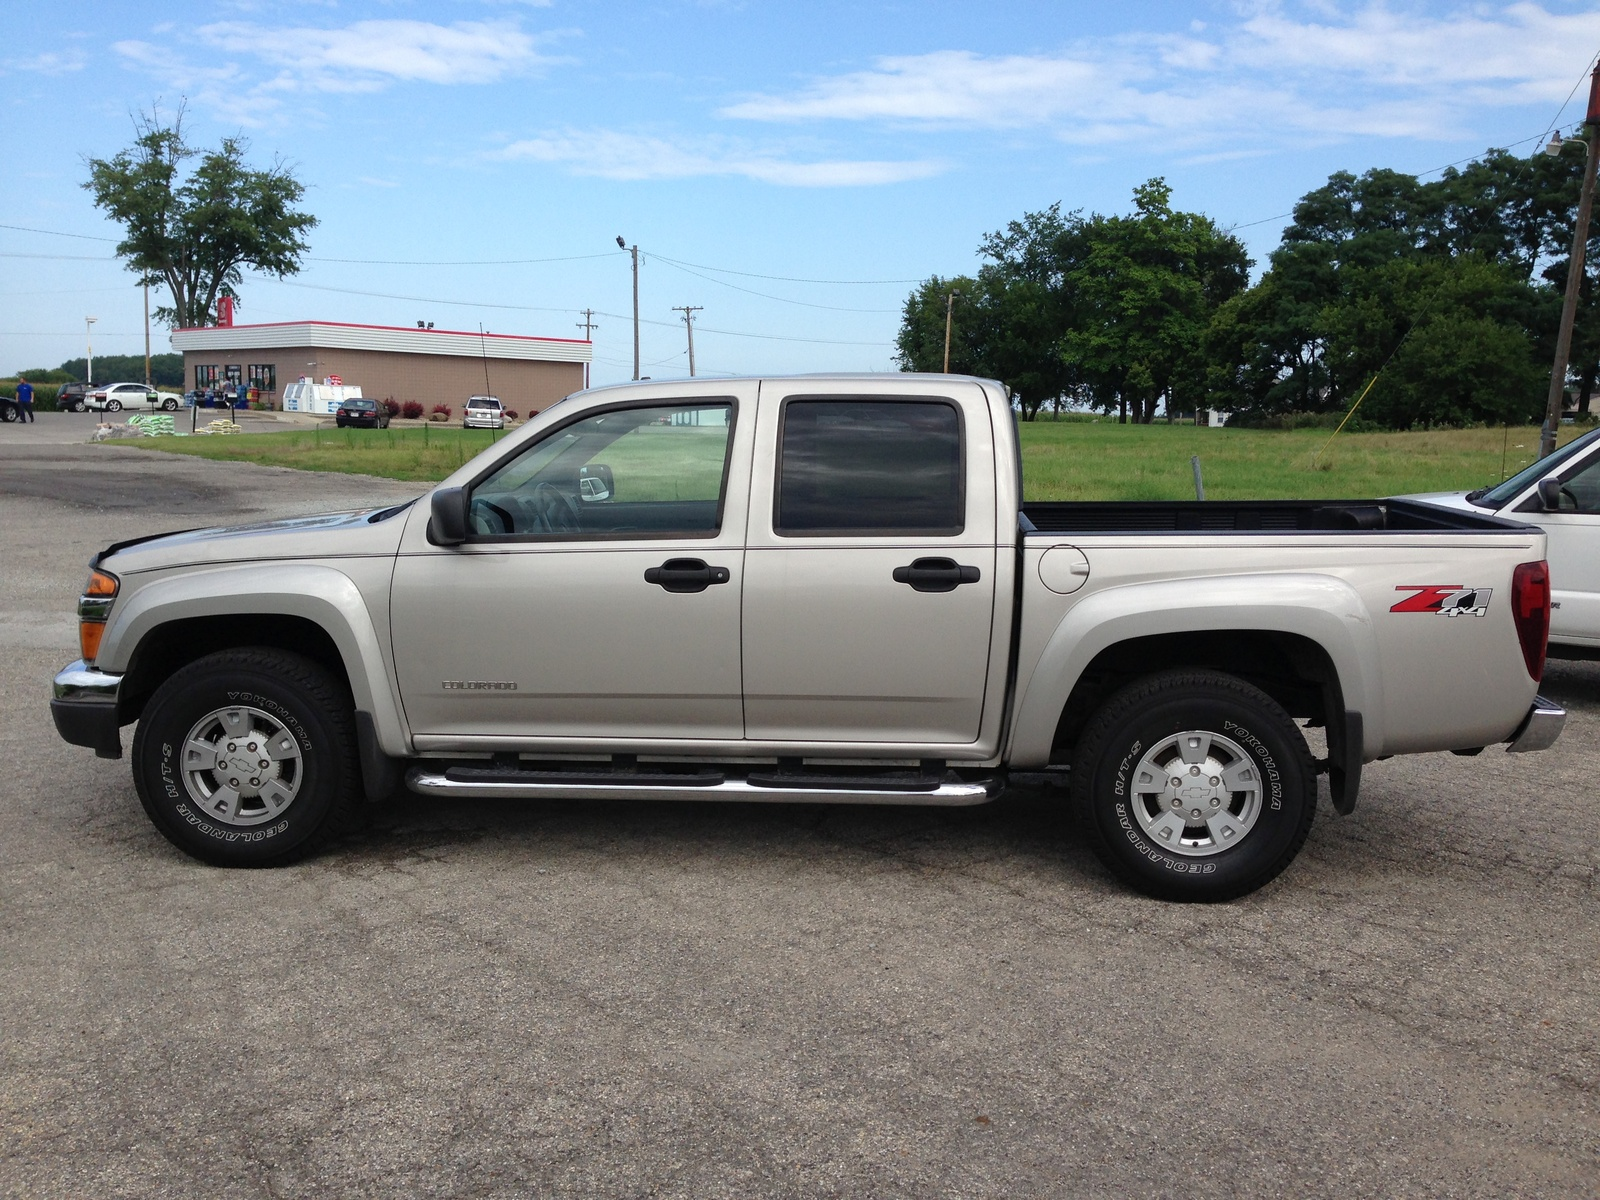 Used 2005 Chevrolet Colorado Search Used 2005 Chevy .html ...